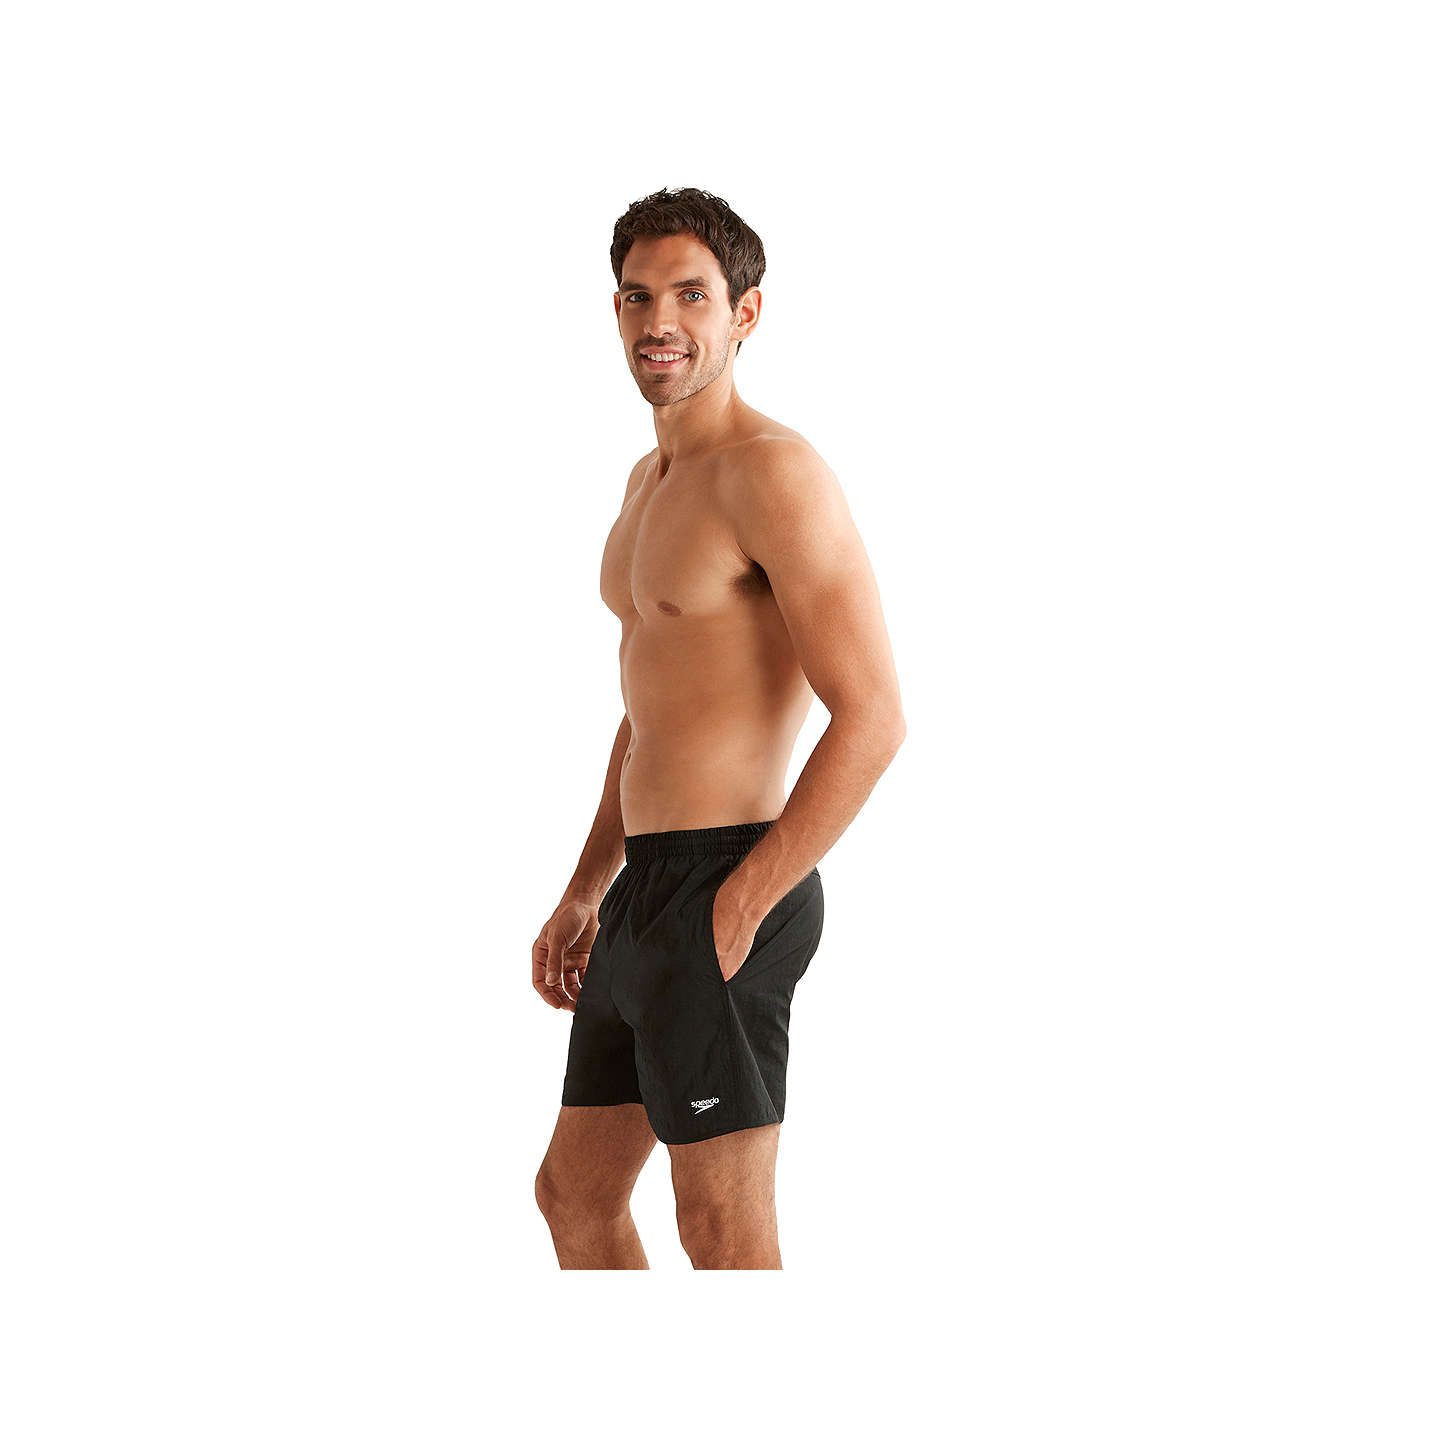 BuySpeedo Solid Watershort Swim Shorts, Black, M Online at johnlewis.com